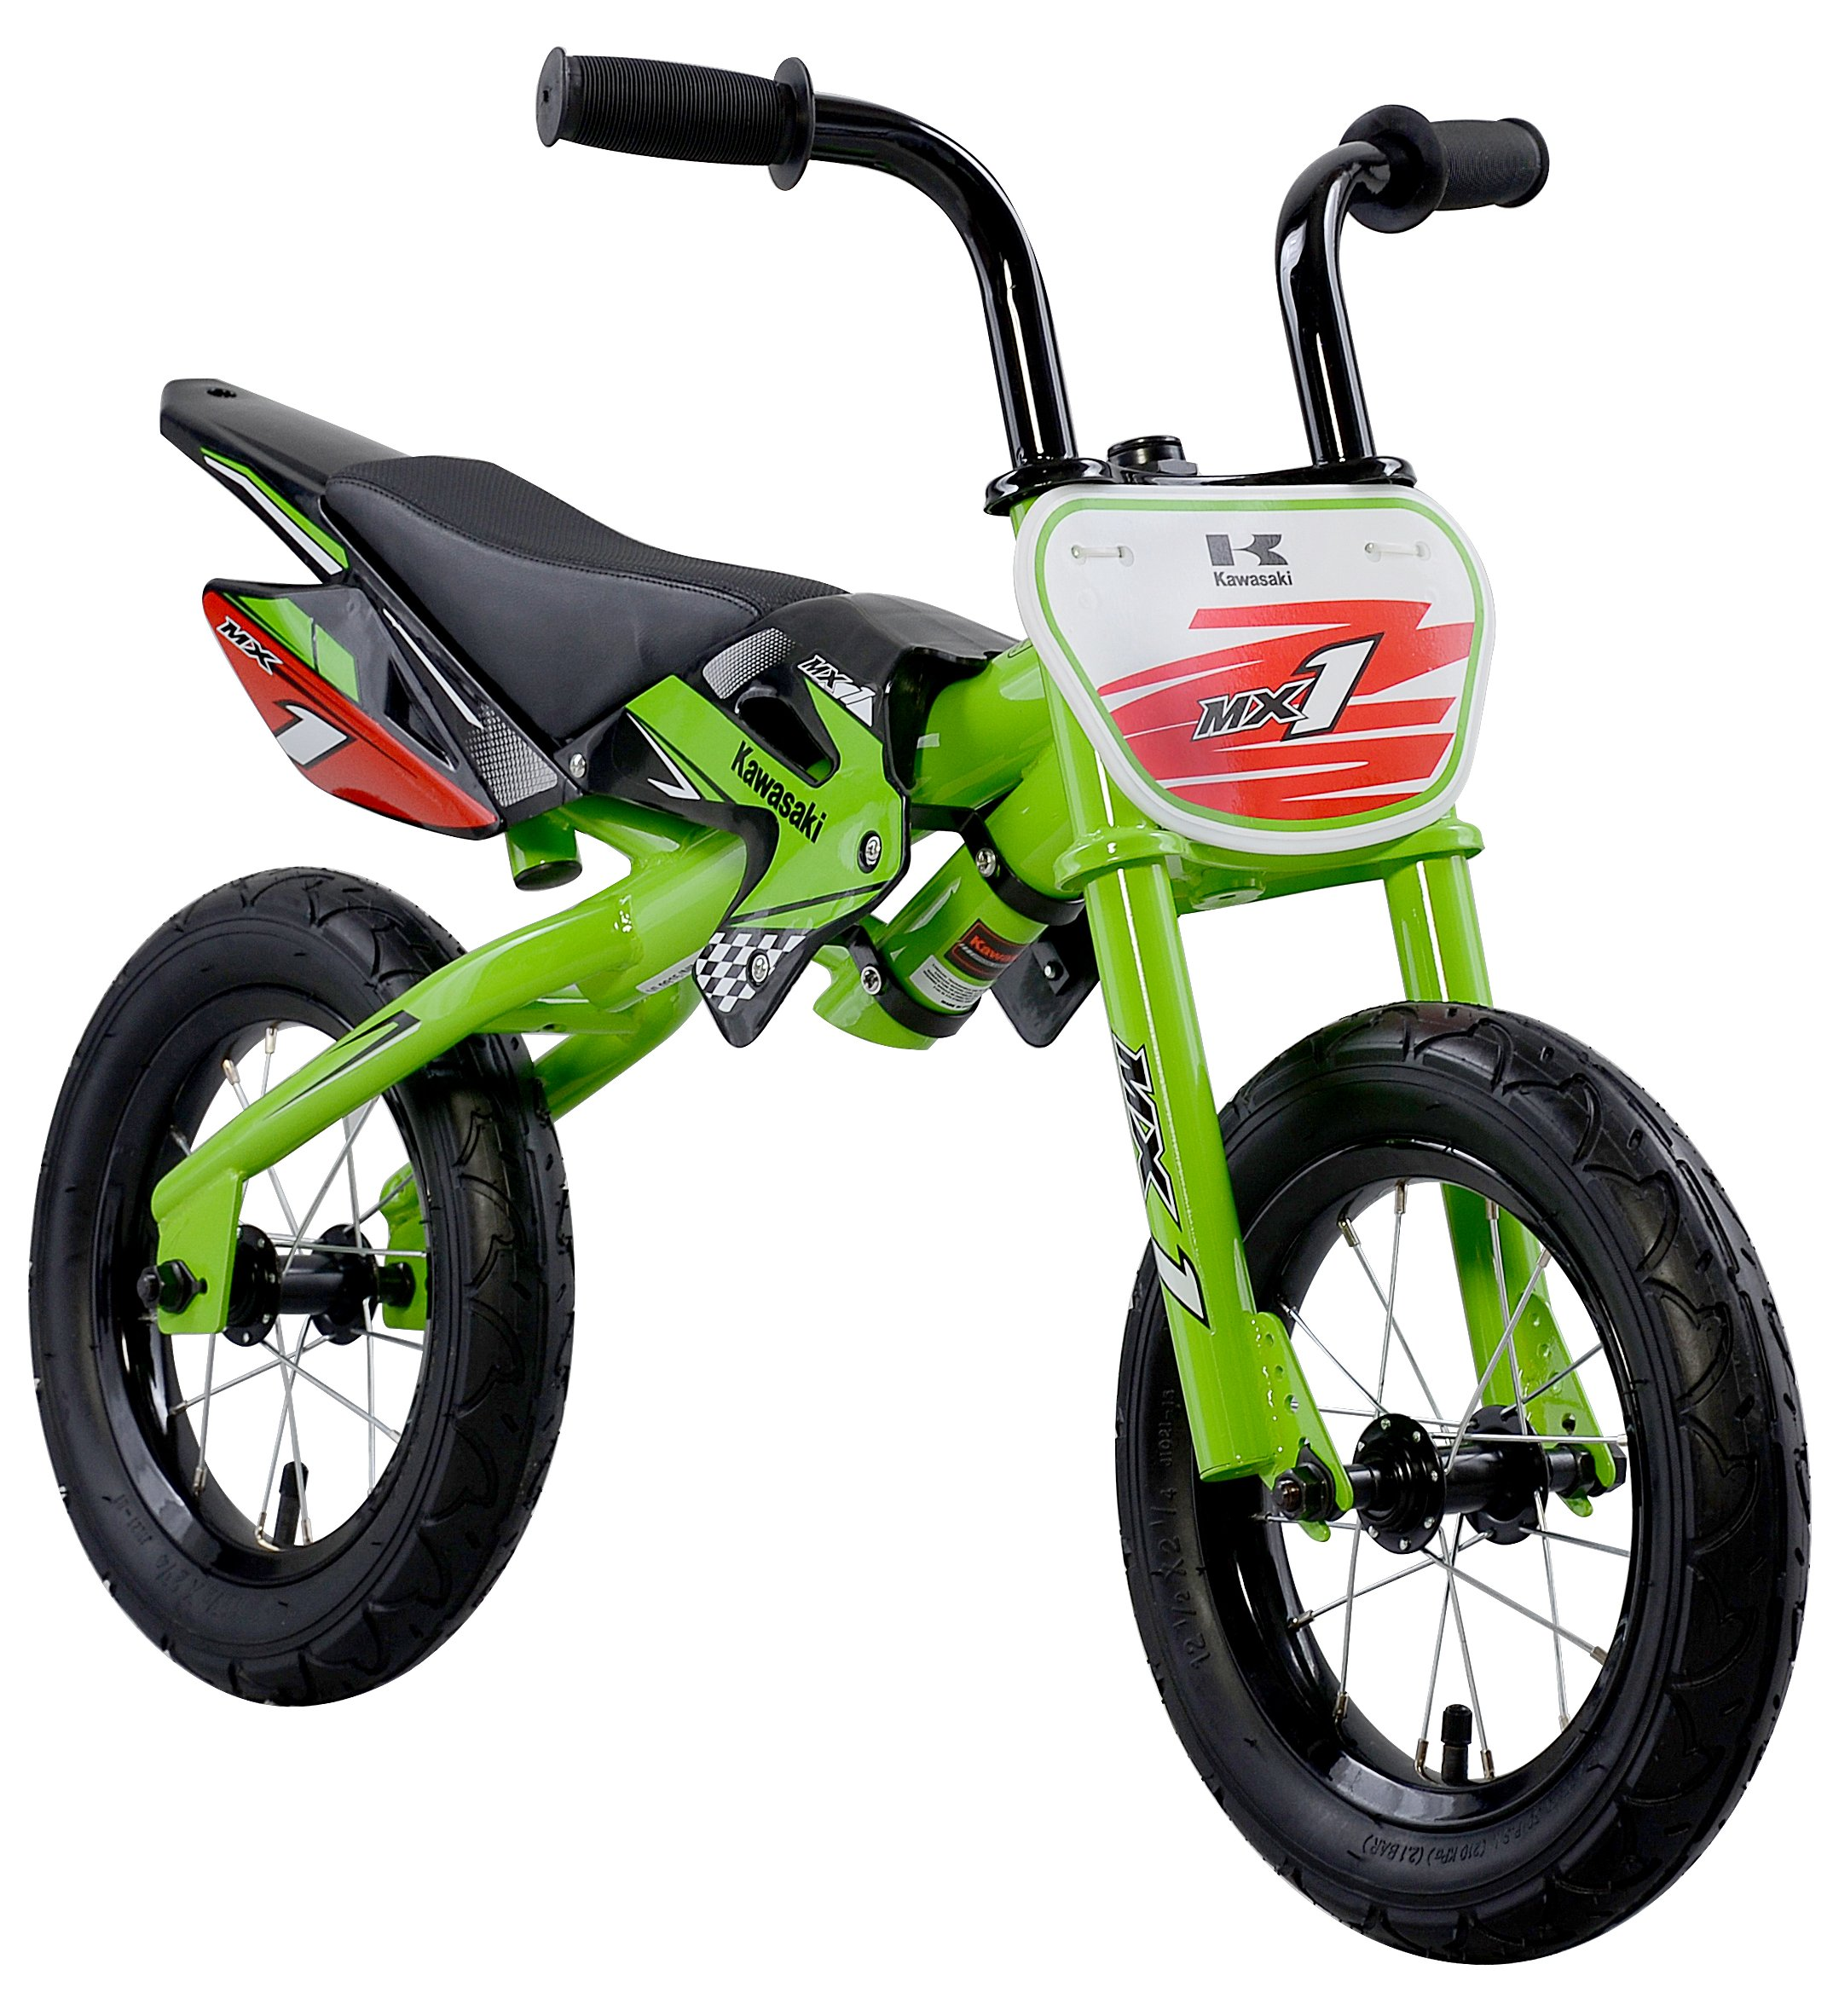 Kawasaki MX1 Green Balance / Running Bike